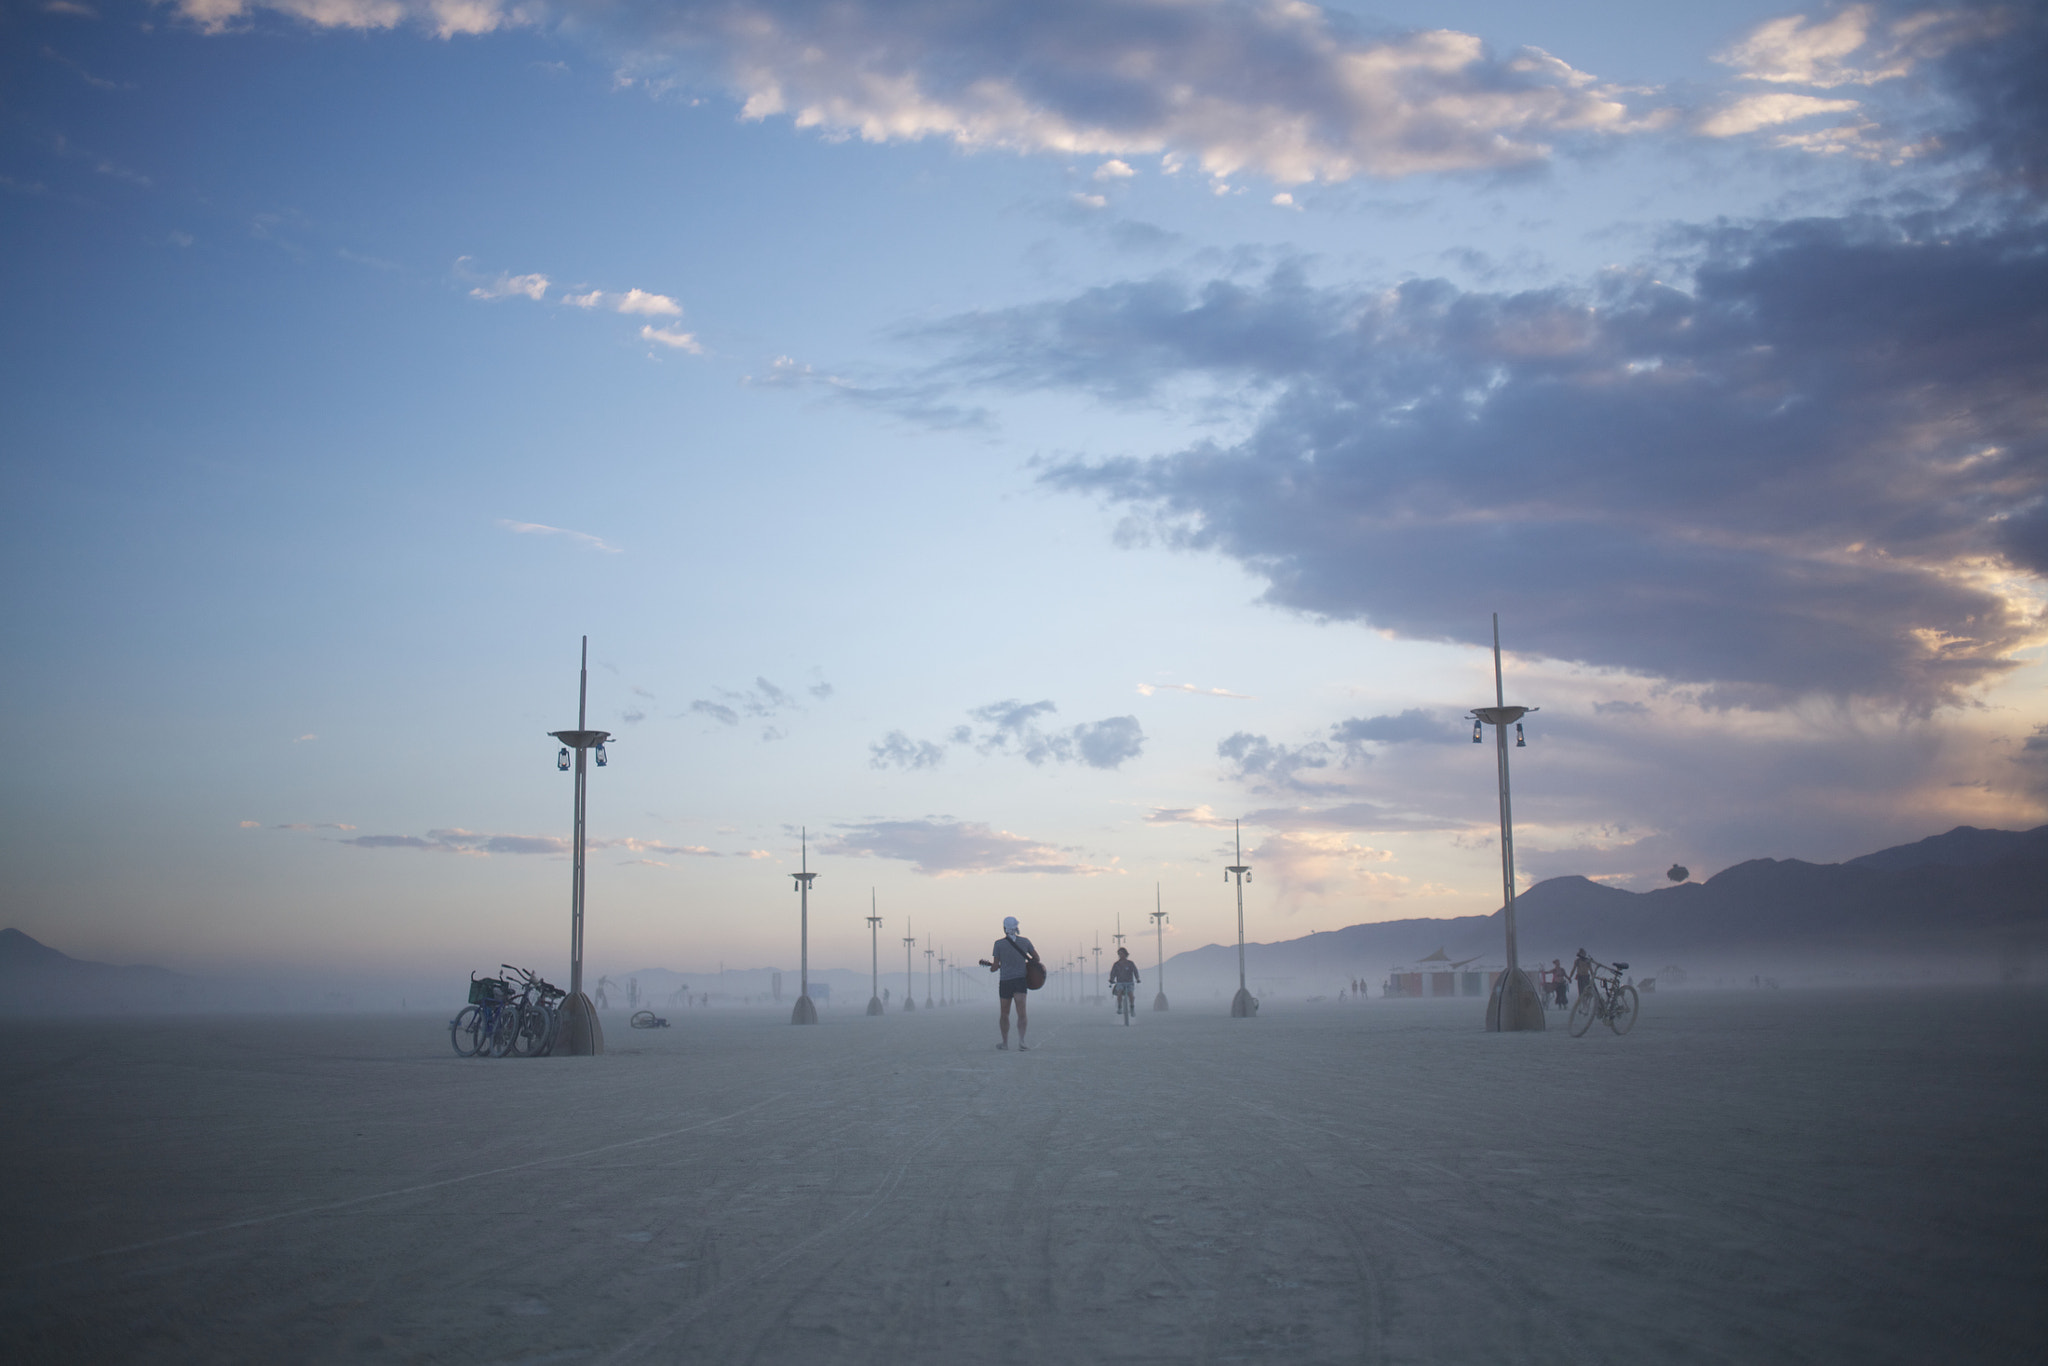 Photograph The Playa by Mathieu Young on 500px